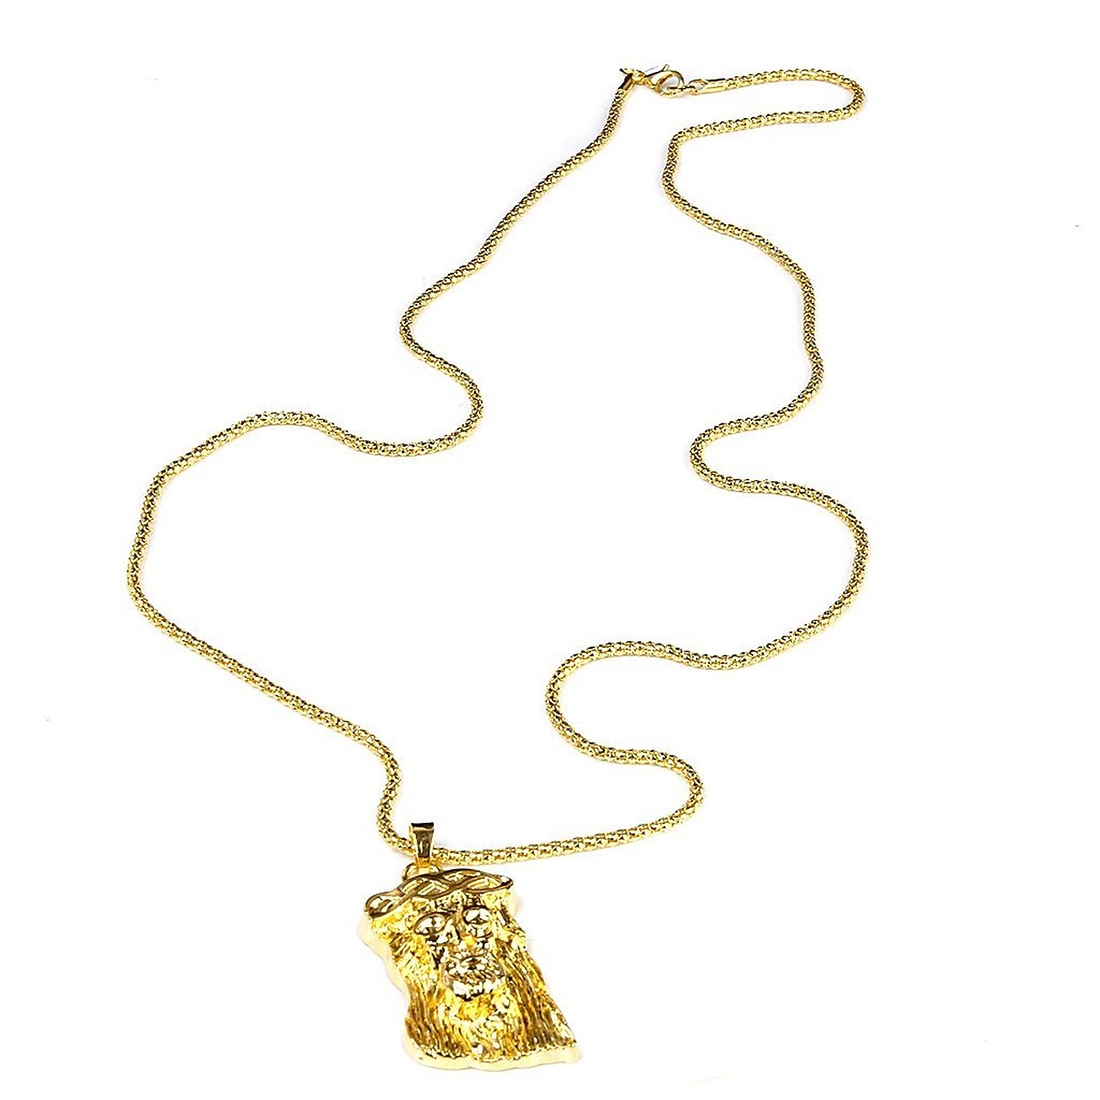 Pendant Necklace of Jesus Christ of Gold Alloy of Hip-Hop Chain of Popcorn Jewelry